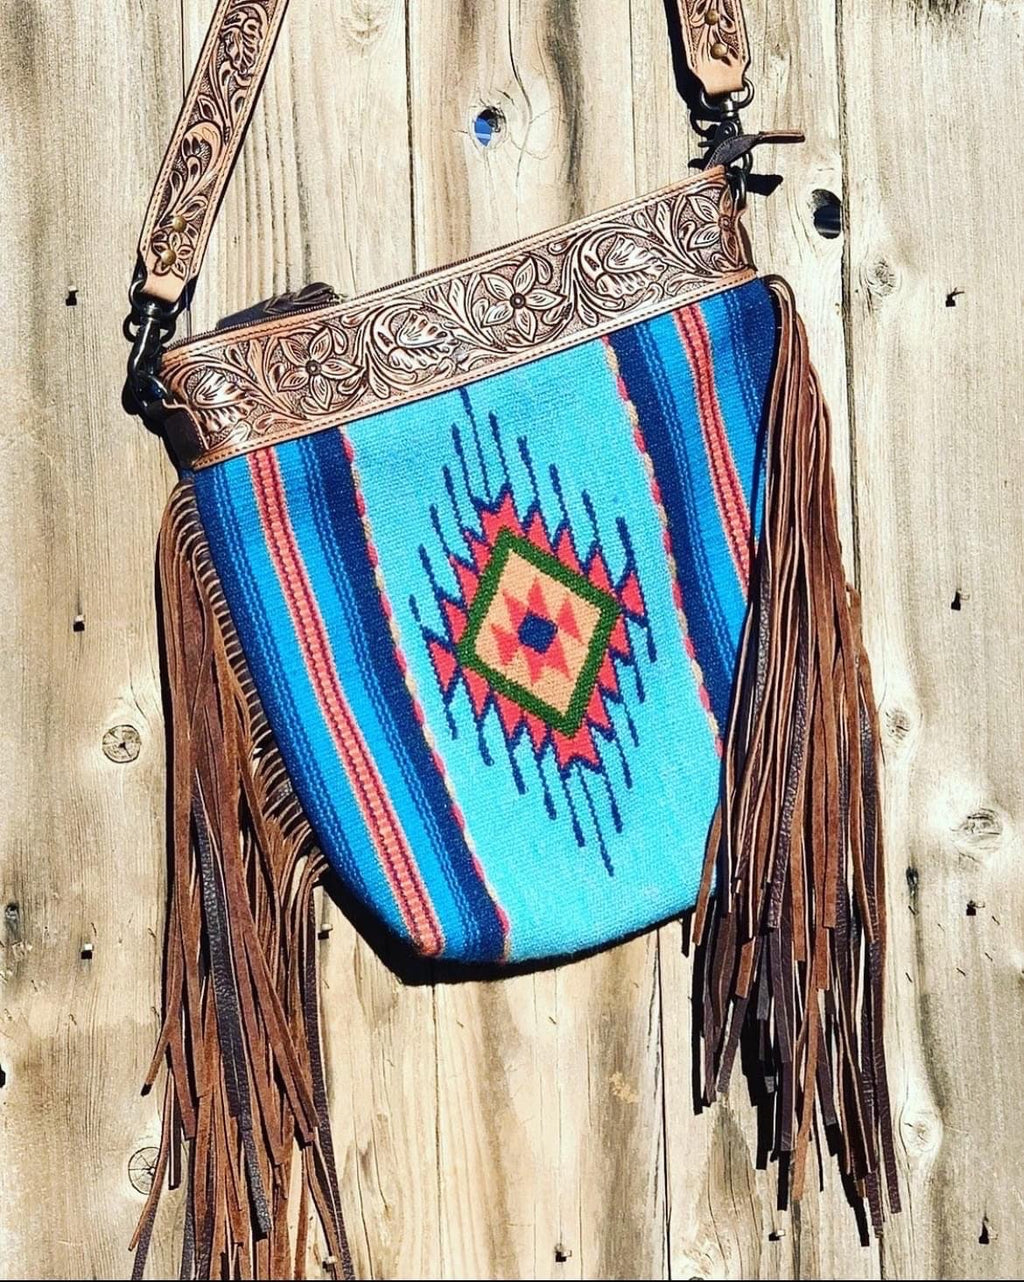 The Desert Drifter Tooled Leather Top Navajo Fringe Bag